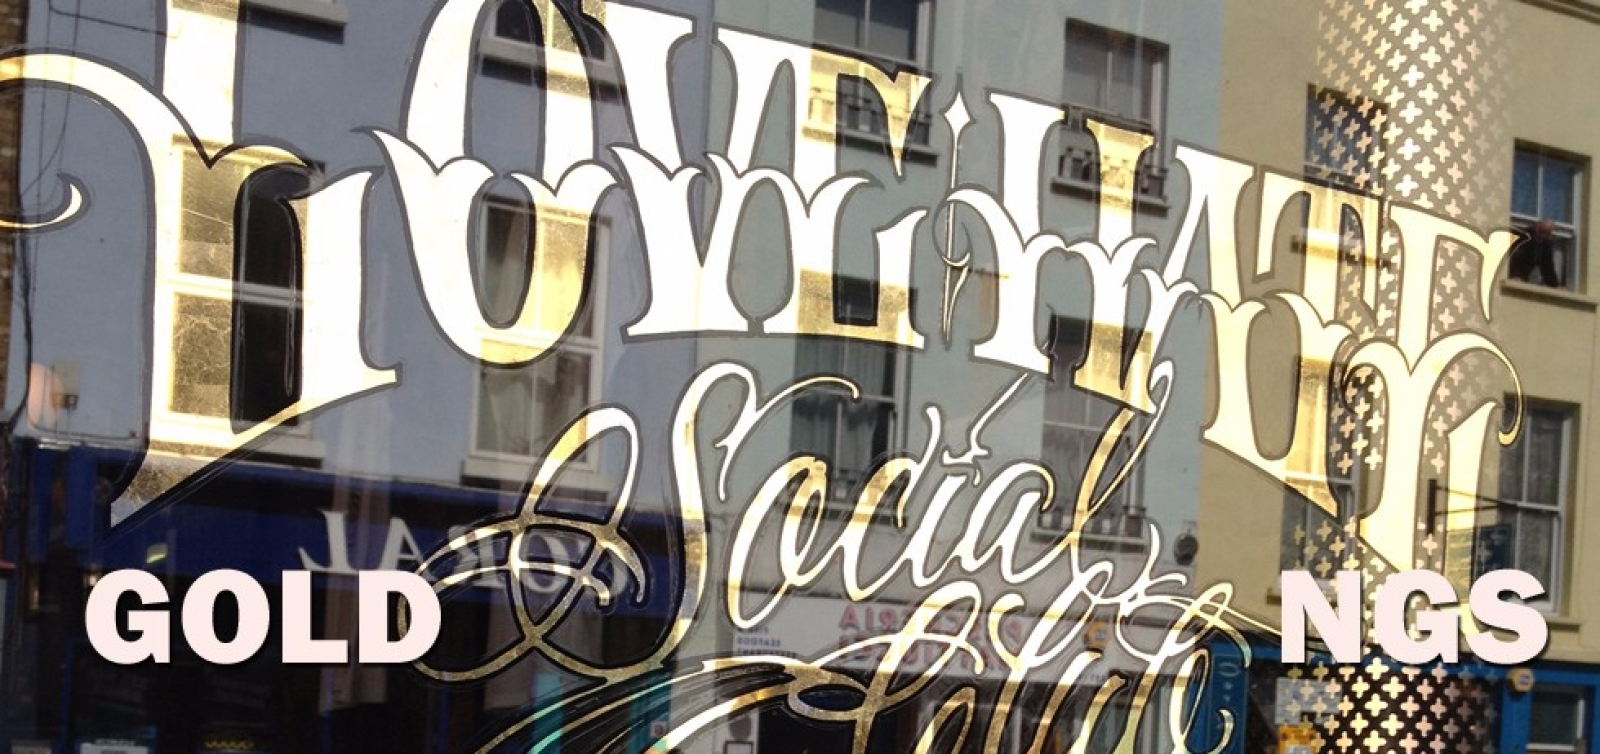 love-hate-london-ngs-gold-leaf-specialist-sign-writing-london-72